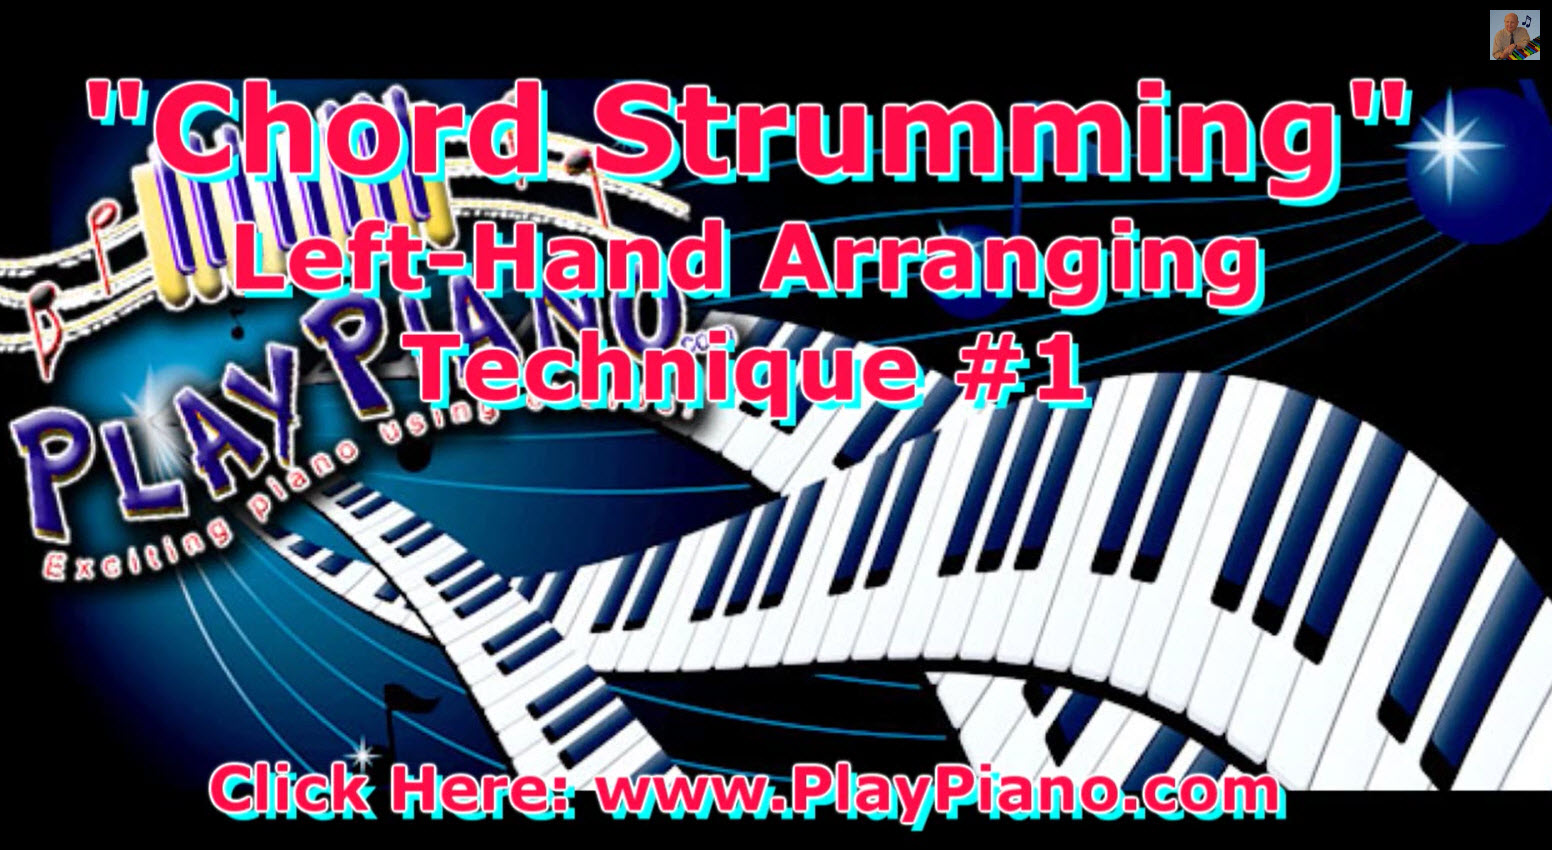 How to strum a chord on the piano left hand arranging style 1 how to strum a chord on the piano left hand arranging style 1 hexwebz Image collections